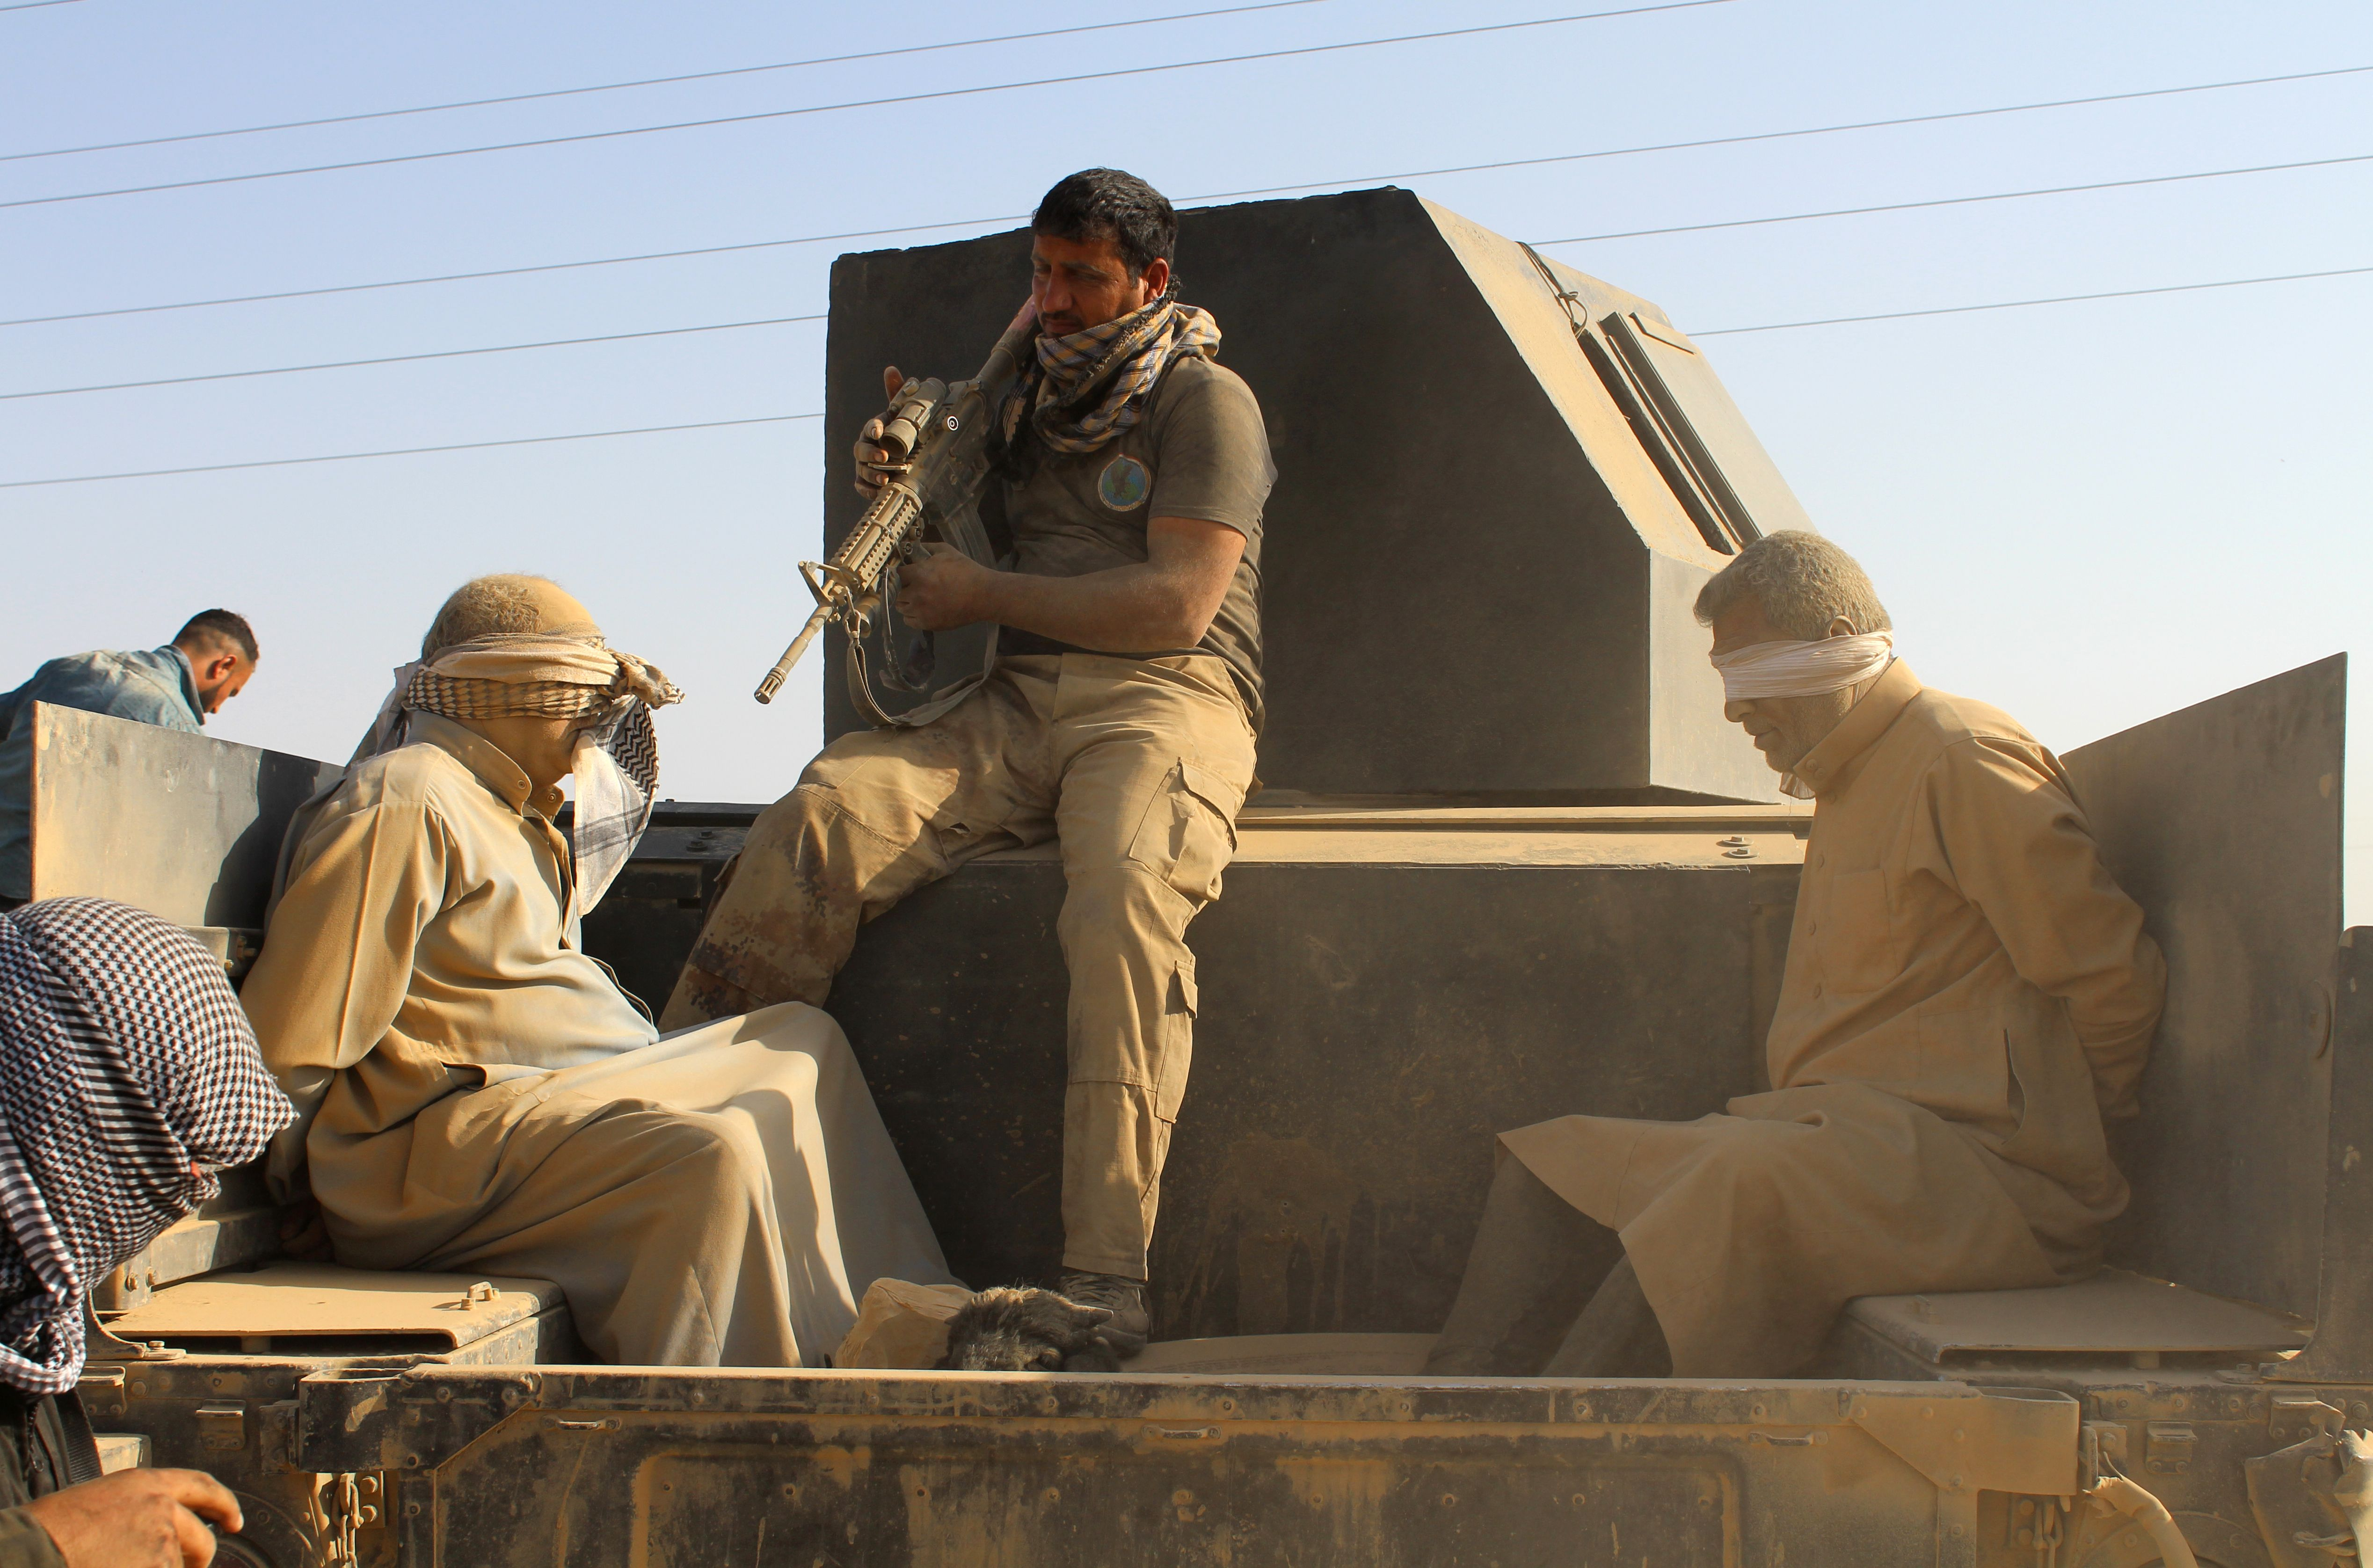 """Iraqi government and counter-terrorism forces arrest men suspected of belonging to the Islamic State (IS) jihadist group on March 10, 2016 following an operation to retake the town of Zankura, northwest of Ramadi, in Anbar province, from IS. Iraqi forces retook a town from the Islamic State jihadist group in Anbar province Thursday and evacuated 10,000 civilians as they advanced up the Euphrates valley, a security spokesman said. The sprawling province of Anbar -- which borders Syria, Jordan and Saudi Arabia -- was at the heart of the """"caliphate"""" that IS proclaimed in 2014. The jihadist group still holds most of the province but the noose is tightening around some of its key bastions. / AFP / MOADH AL-DULAIMI"""